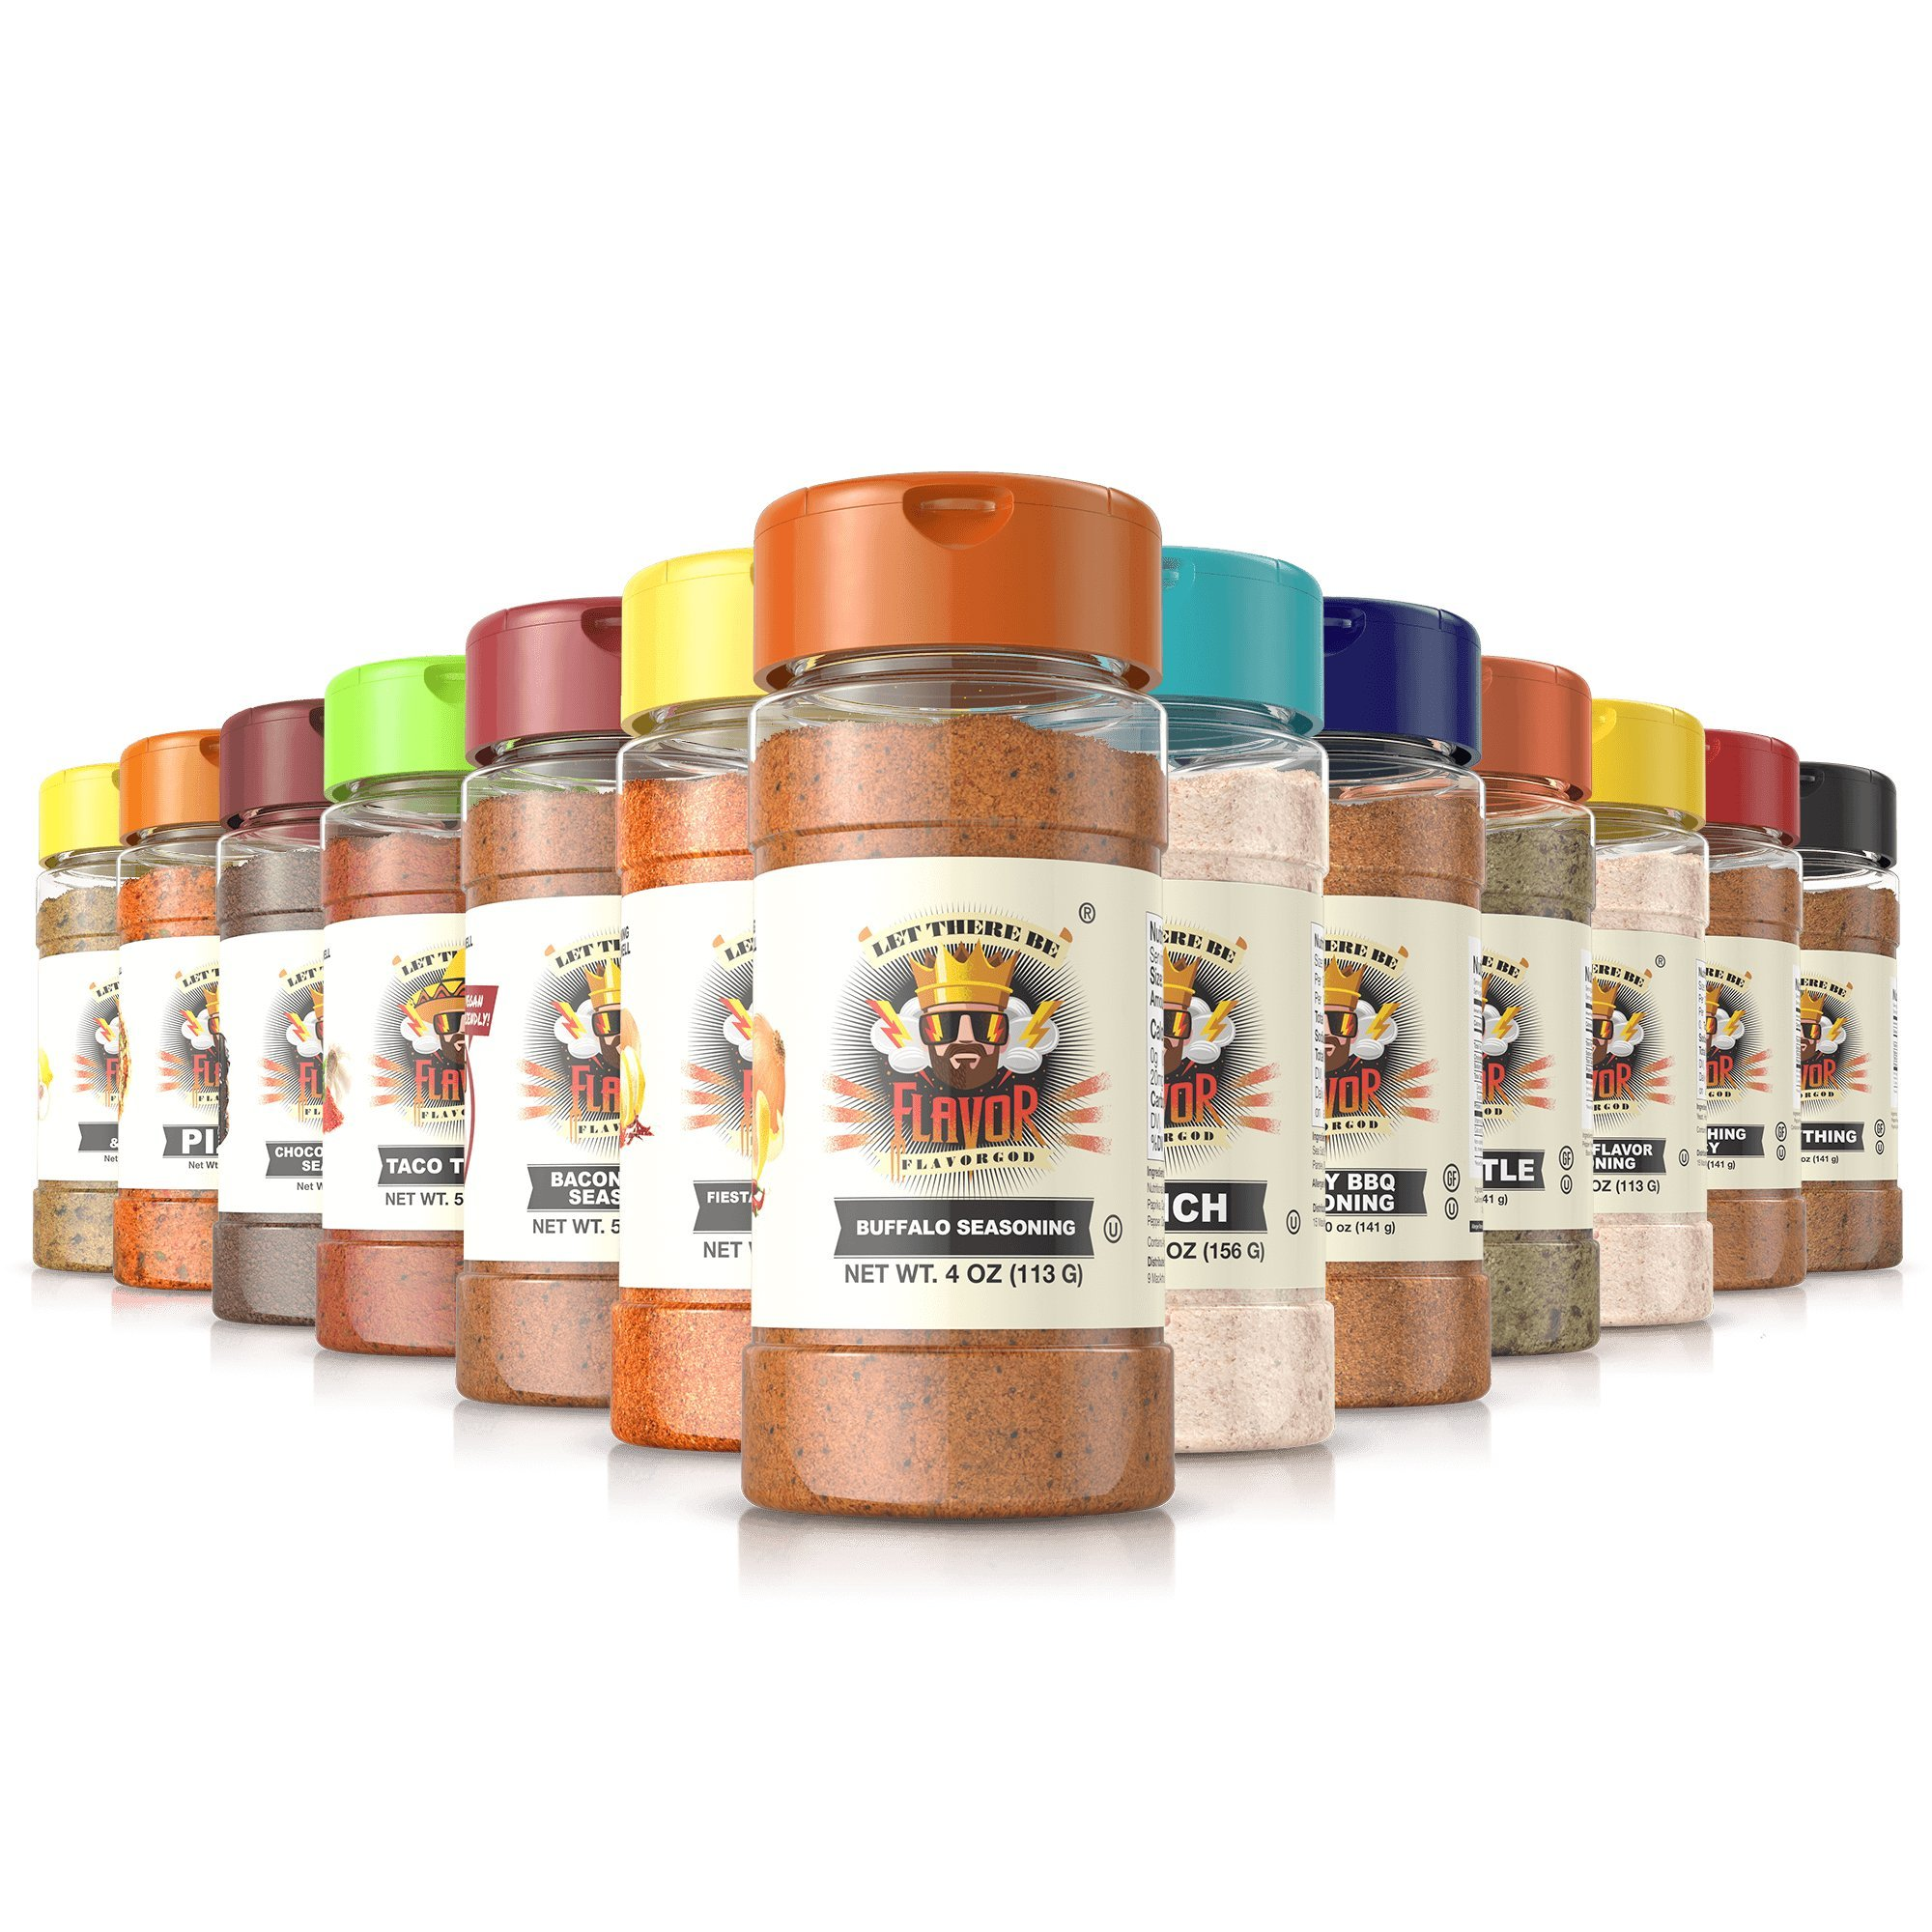 Flavor God Seasonings - Chef Spice Rack - 14 Seasoning Combo pack (Gluten Free, GMO Free, MSG Free, Low Sodium, Paleo Friendly)